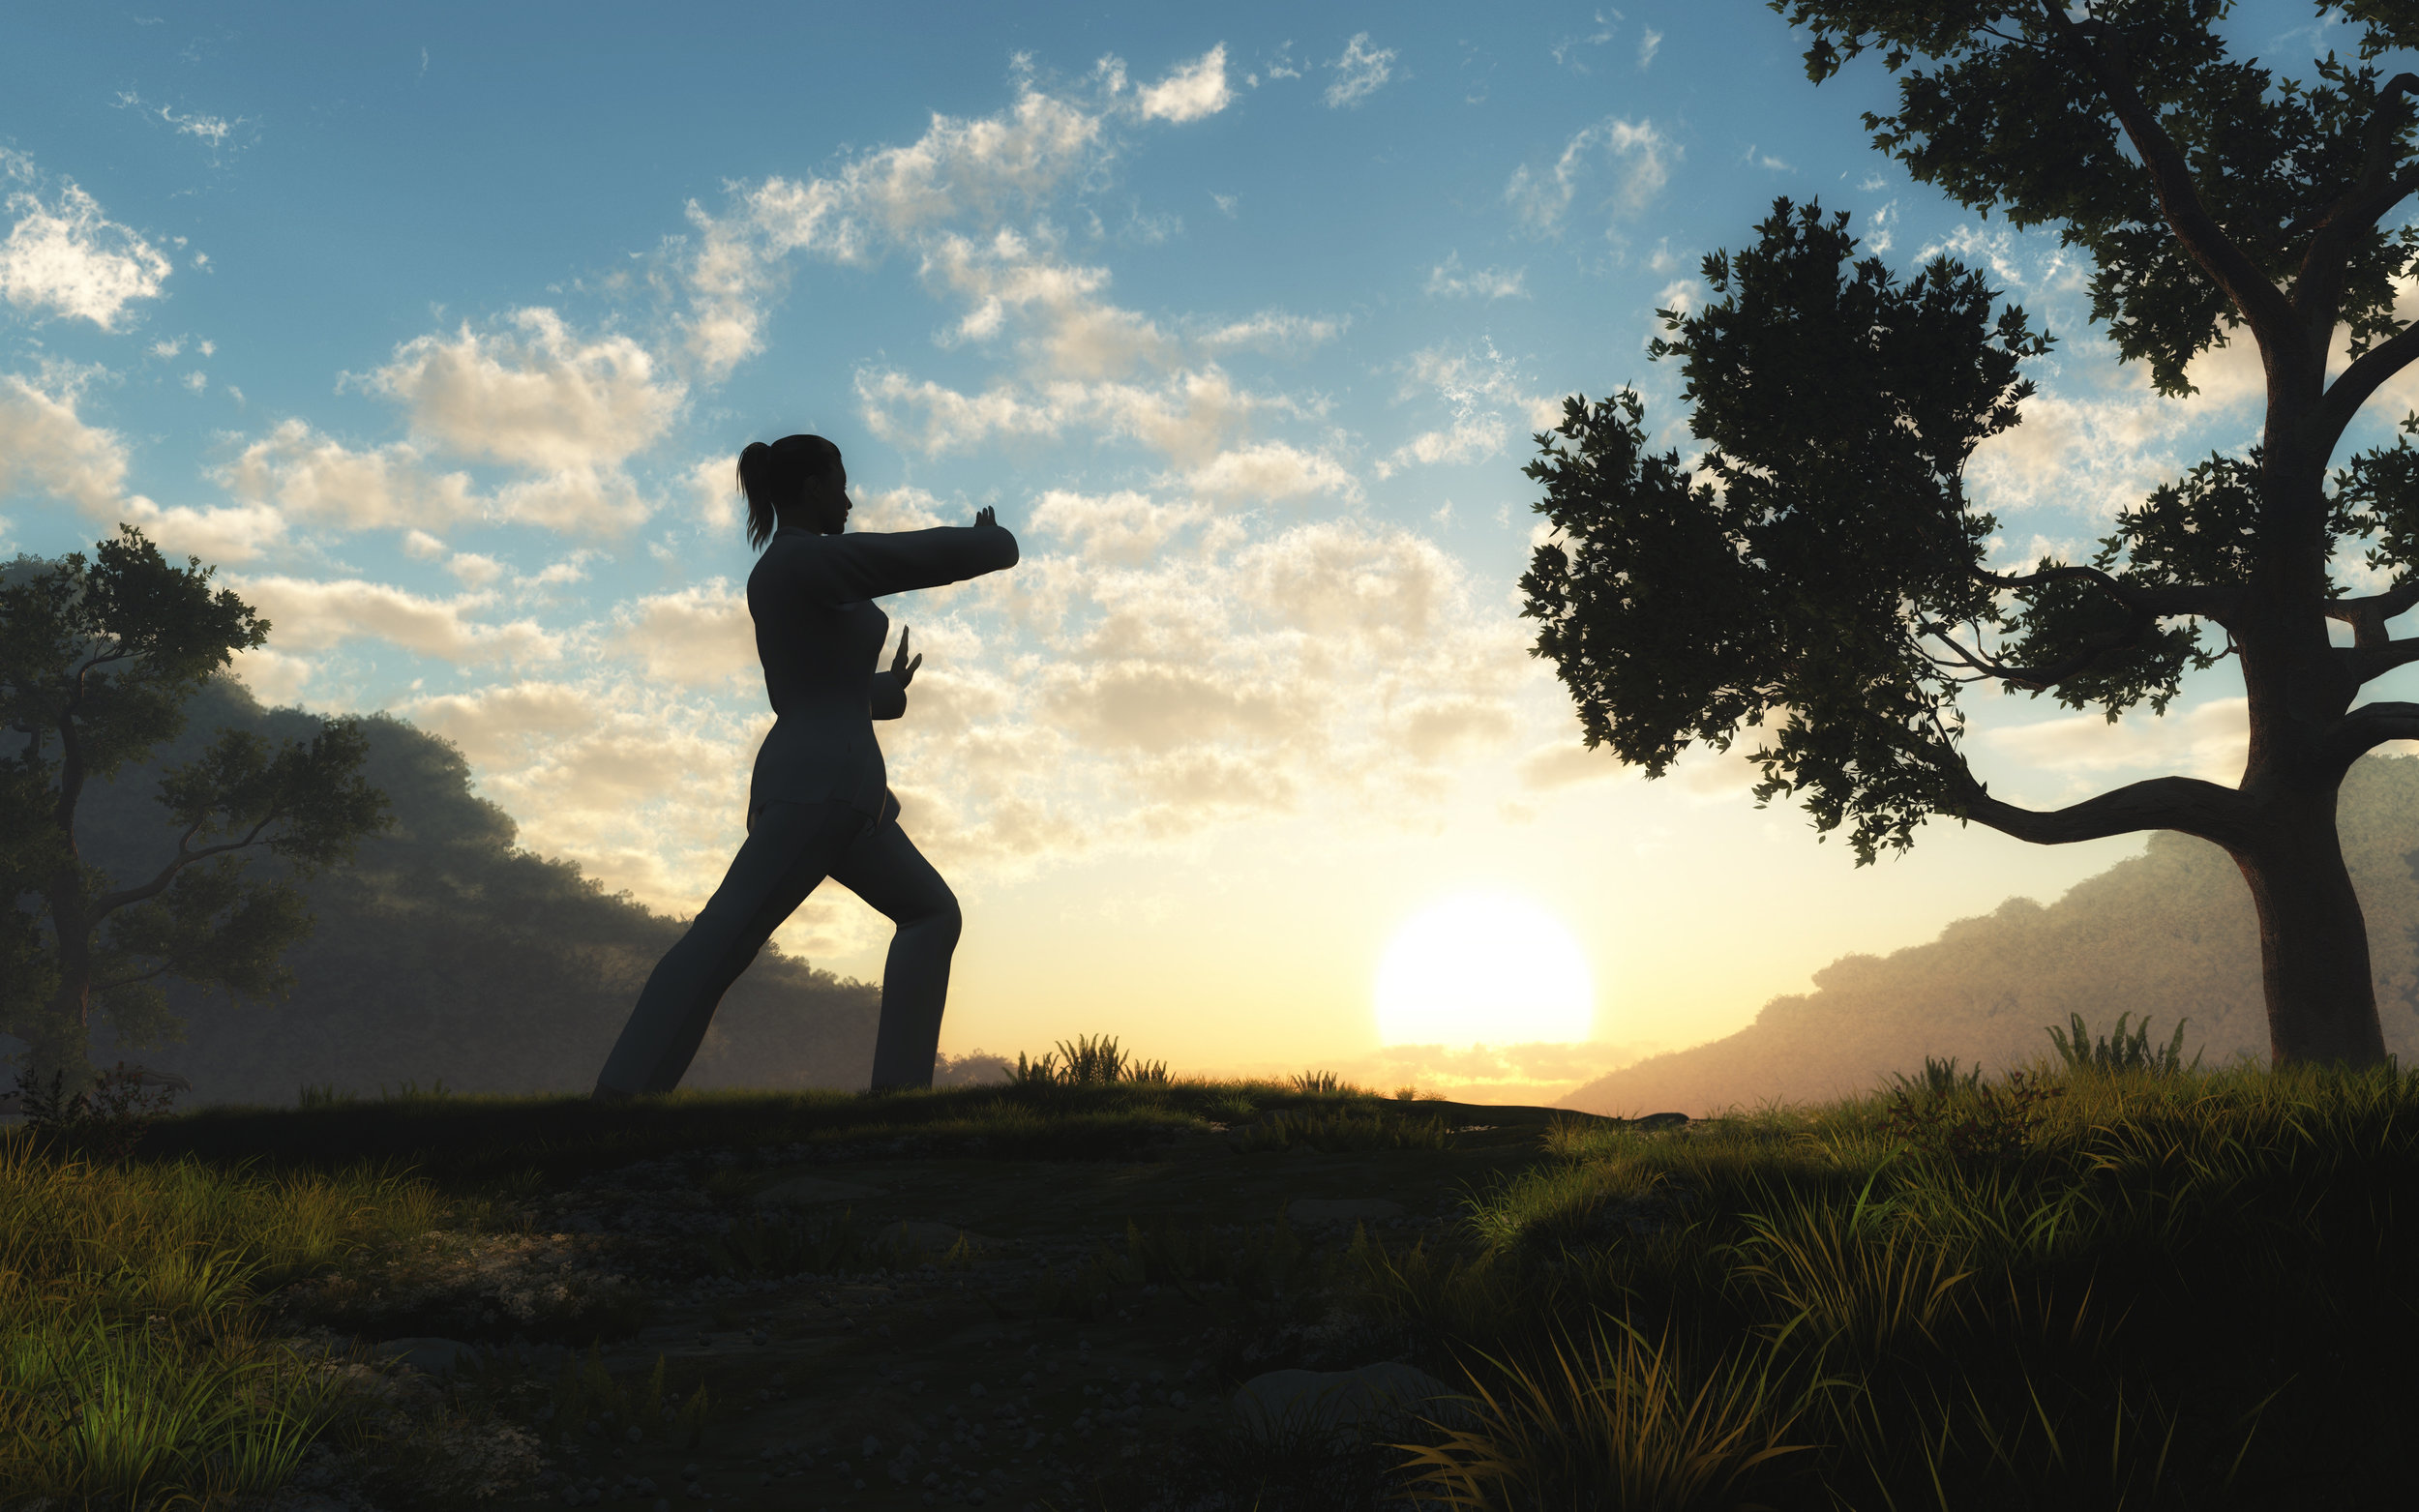 Tai Chi is a non-competitive practice, and there is no end point. - Enjoy the journey and where it may take you.Empower yourself by practicing tai chi.Empower others by teaching tai chi.